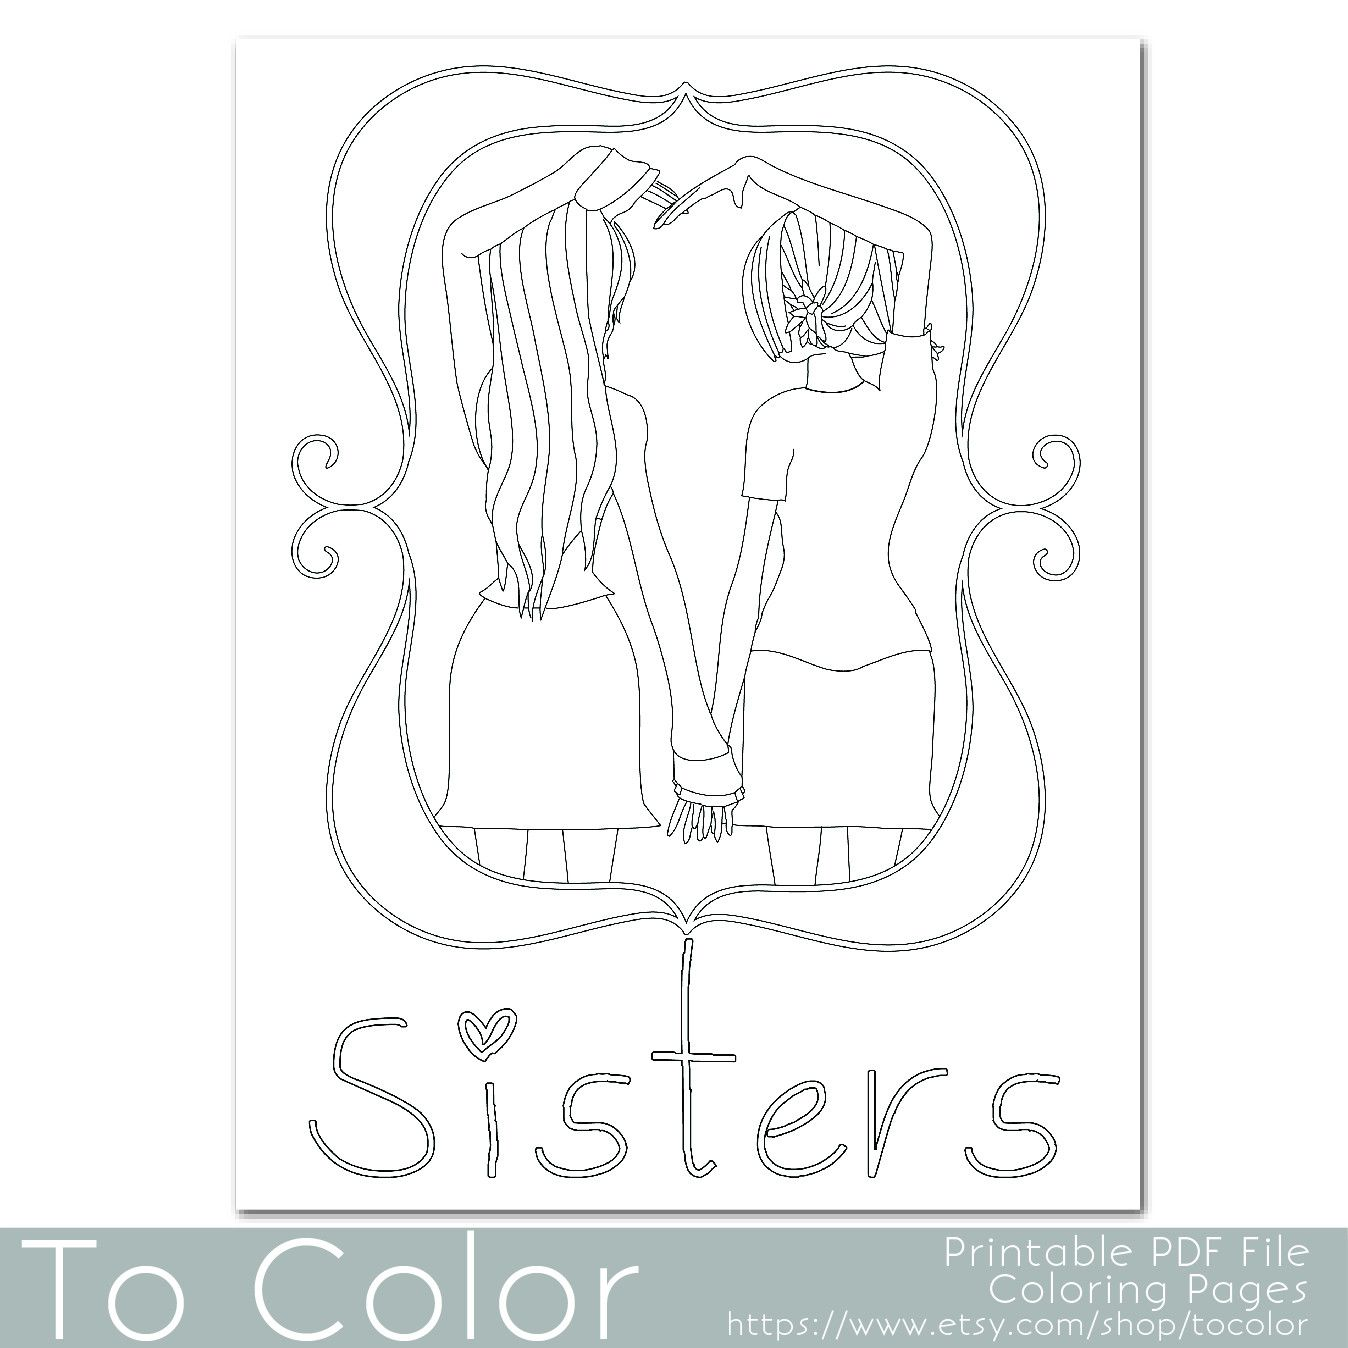 This coloring page features two